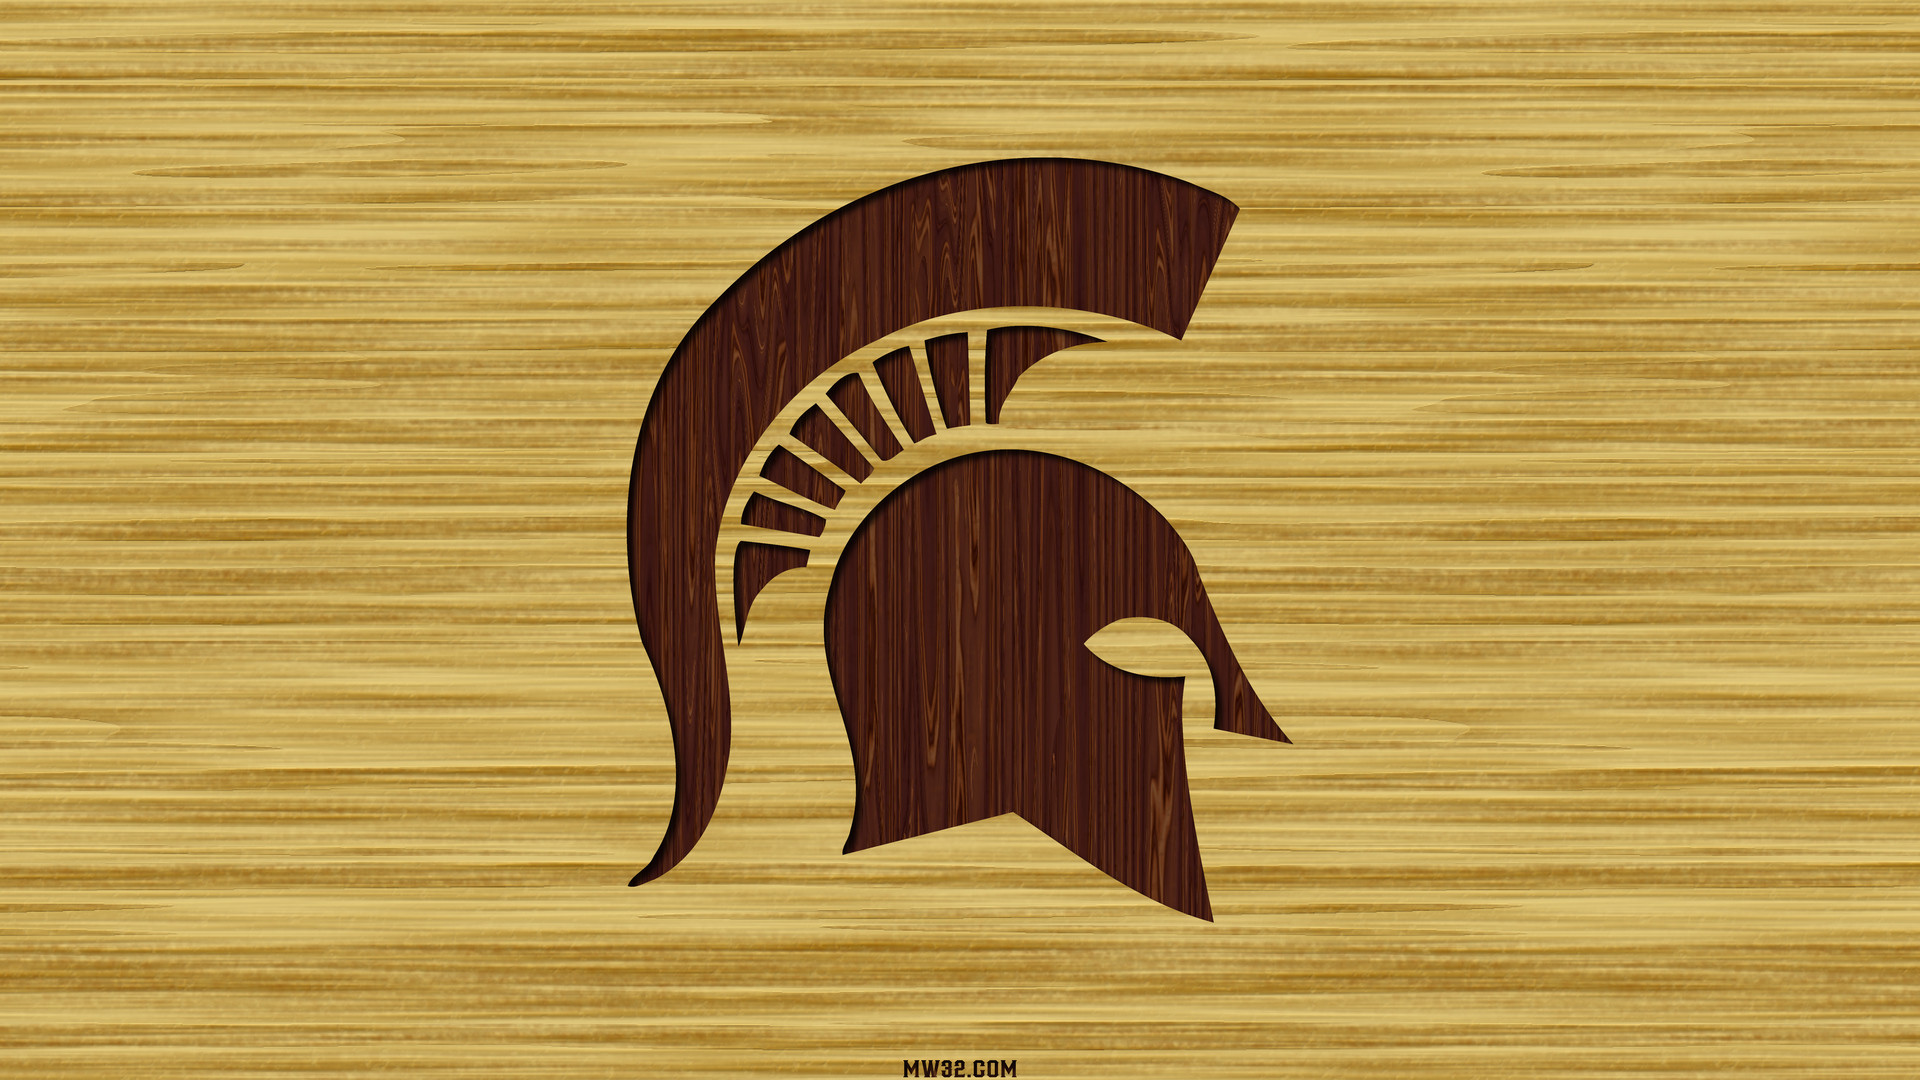 MICHIGAN STATE SPARTANS college football wallpaper | 1500×1500 … 0 HTML  code. Source URL: https://www.mw32.com/%3Fp%